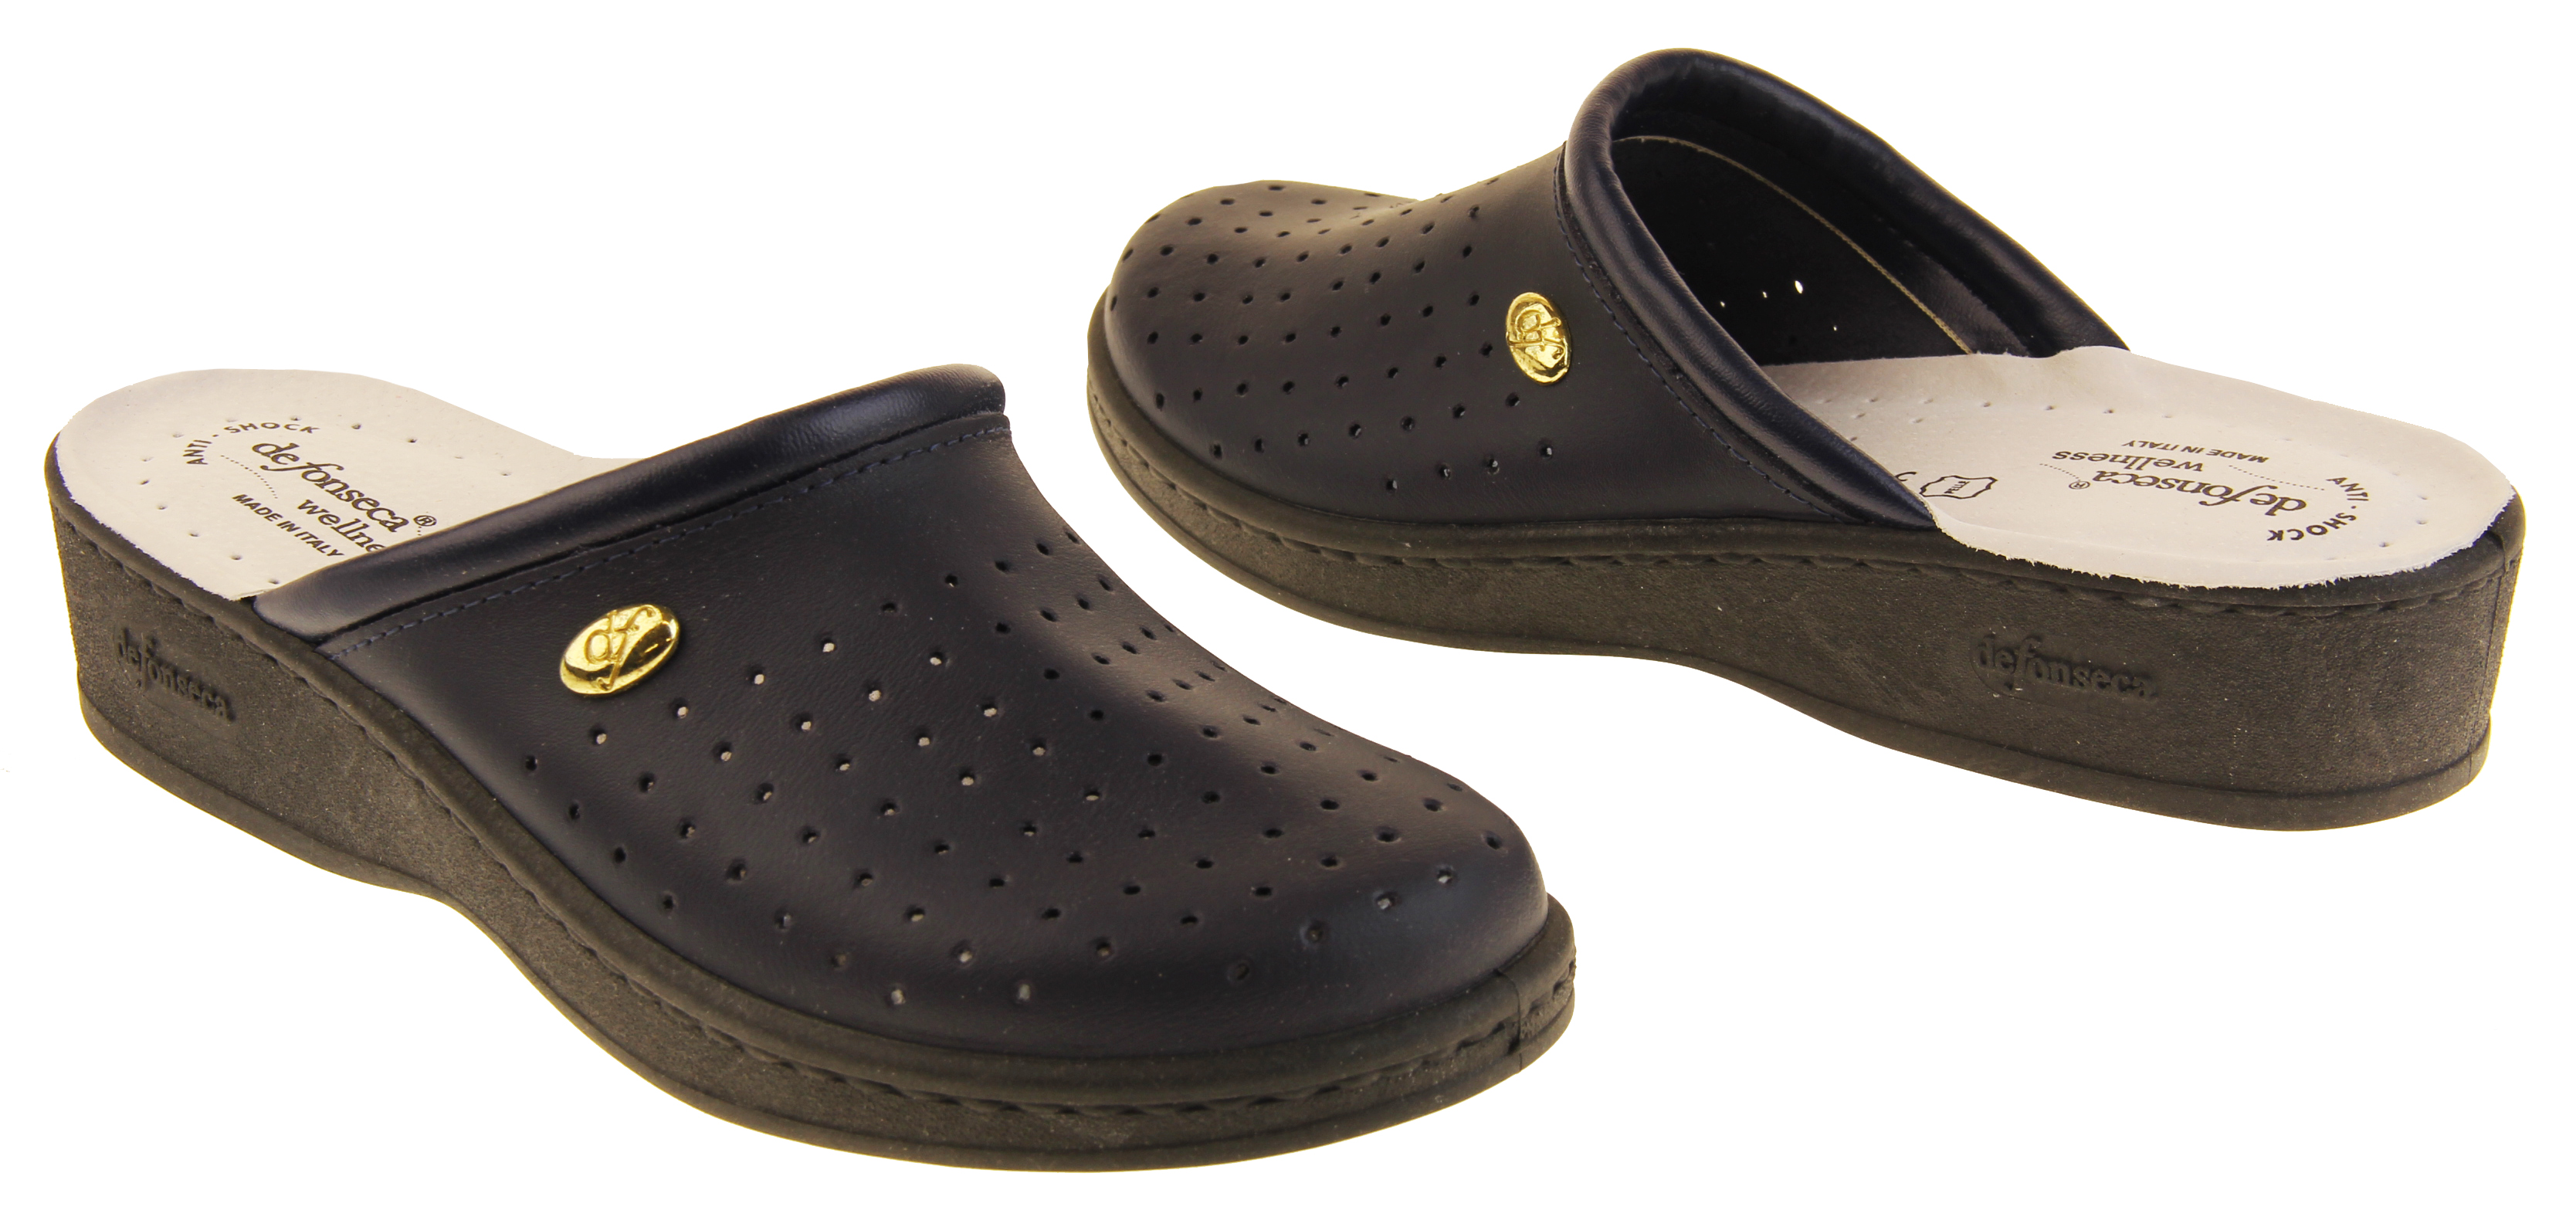 Wedge Womens Clogs Sale: Save Up to 40% Off! Shop teraisompcz8d.ga's huge selection of Wedge Womens Clogs - Over 25 styles available. FREE Shipping & Exchanges, and a % price guarantee!